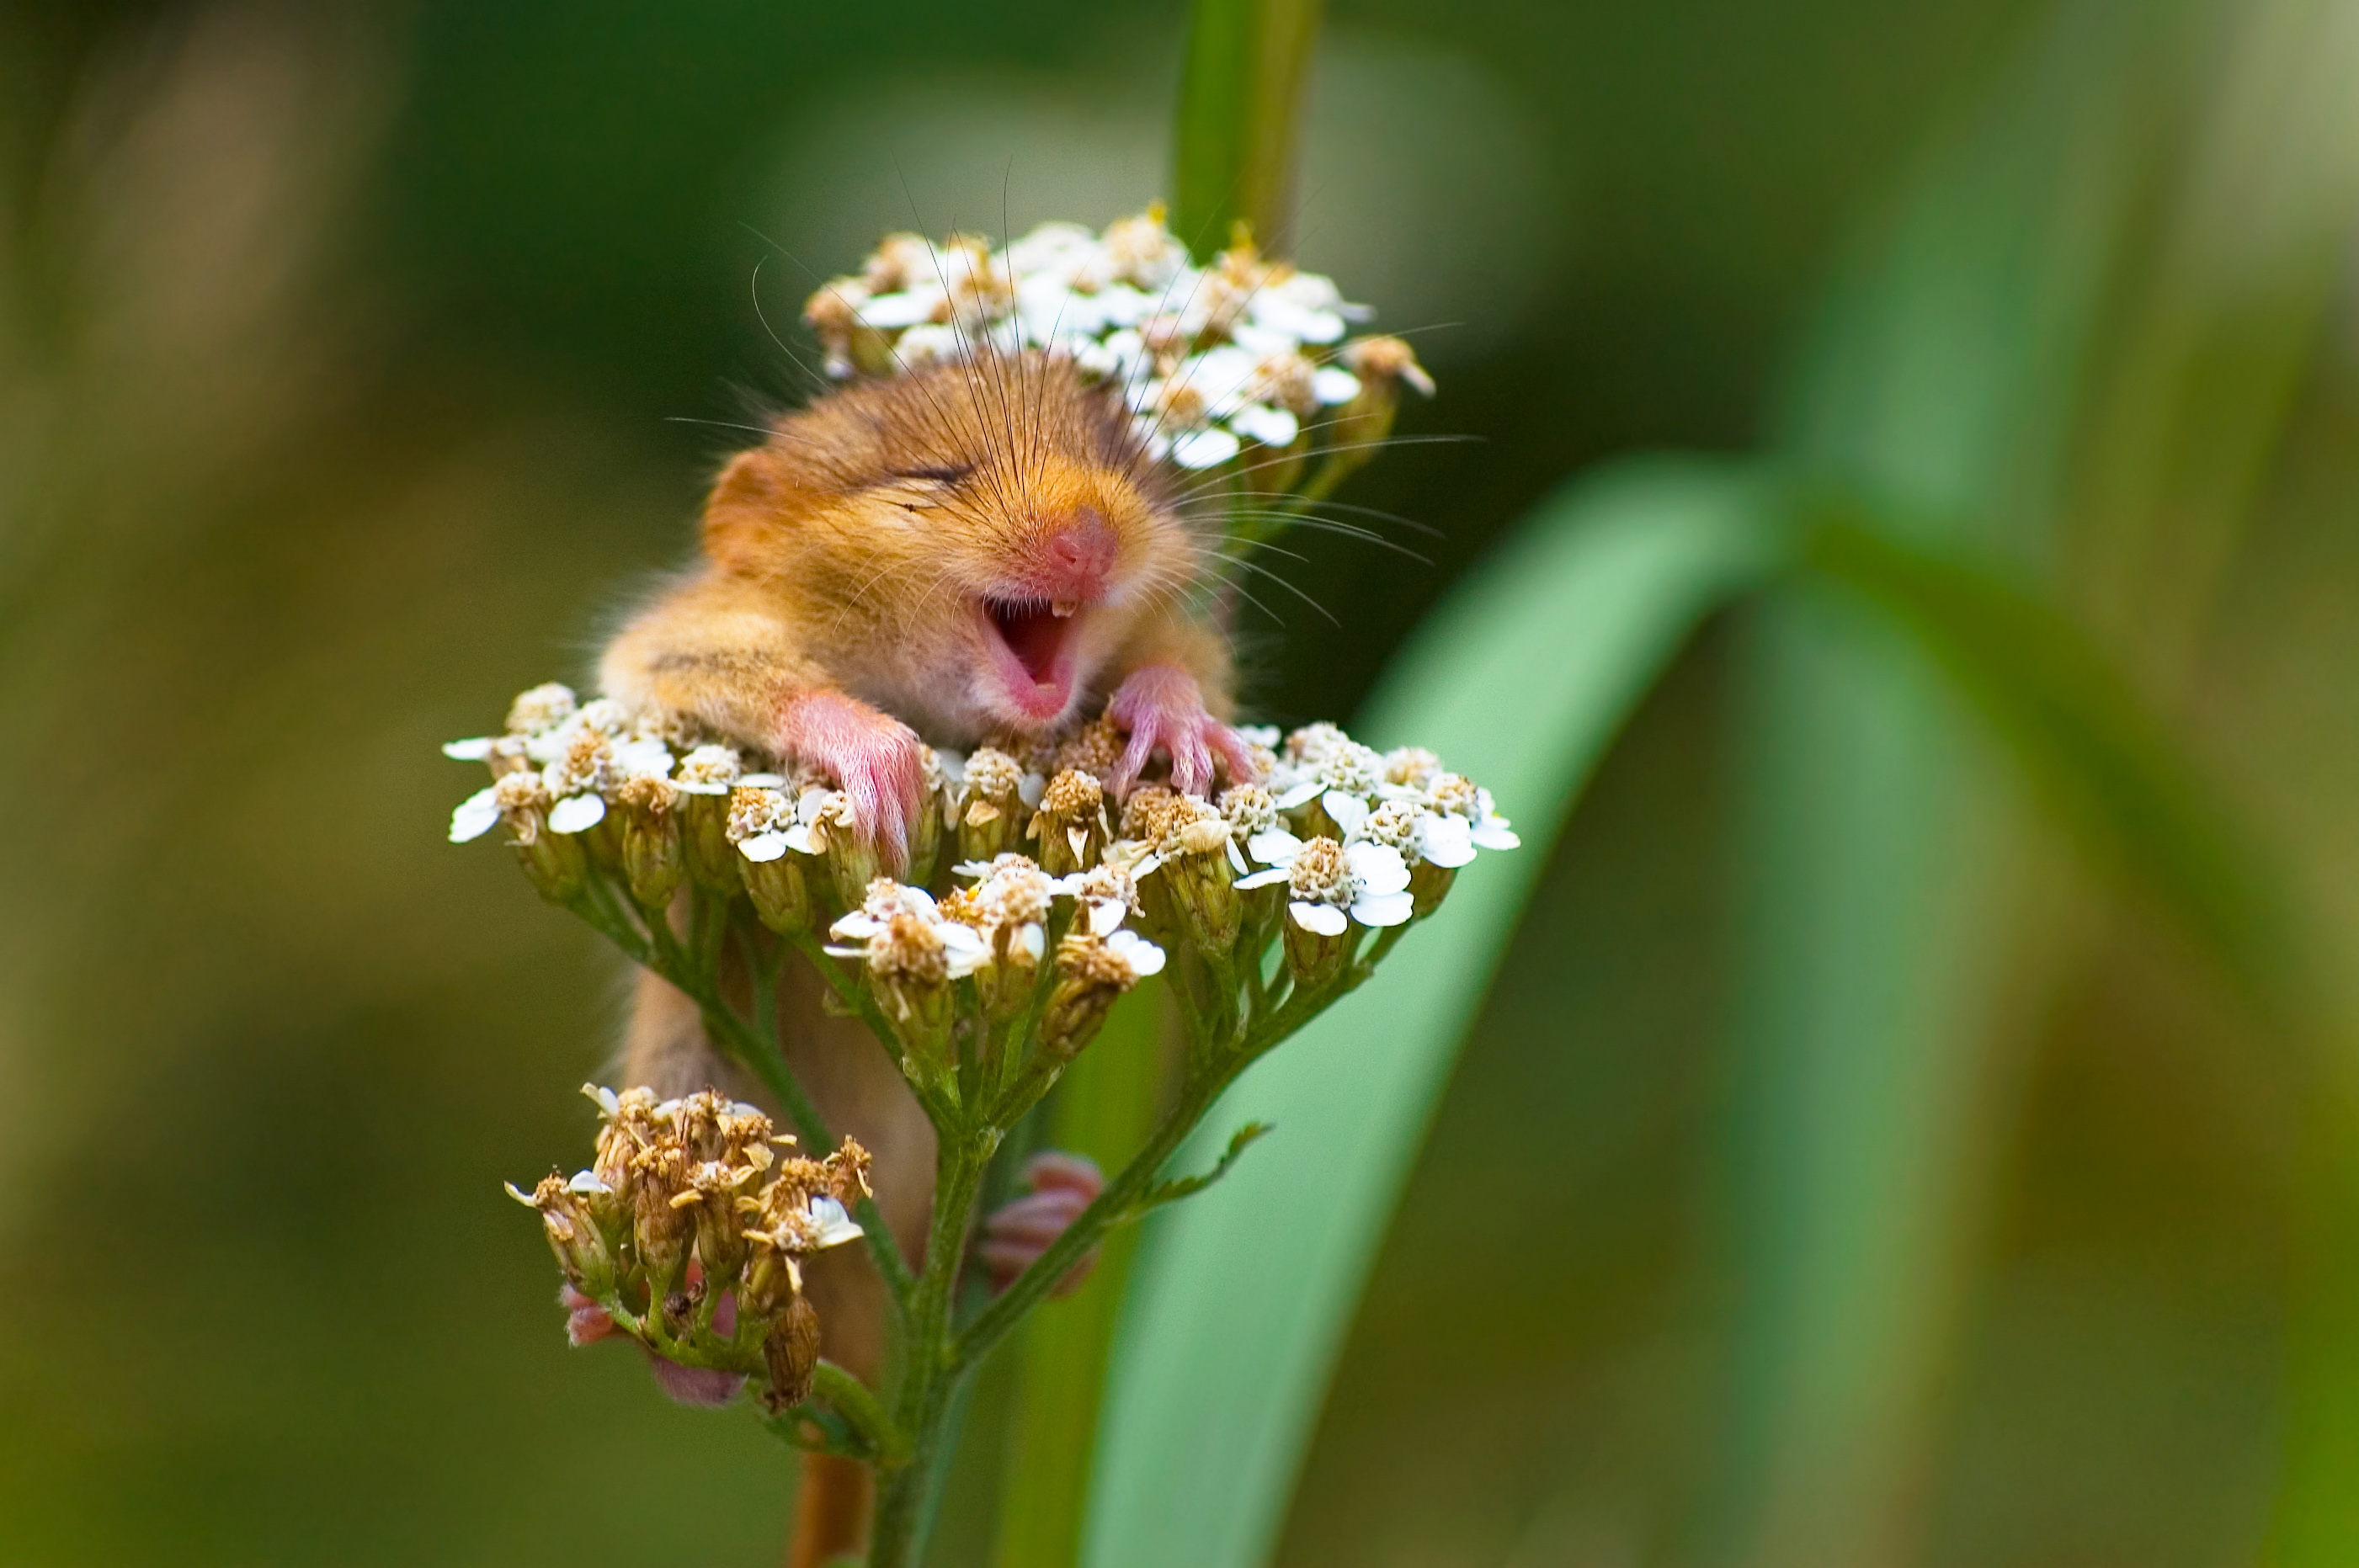 Comedy Wildlife Photography Awards features the funniest animals of the year